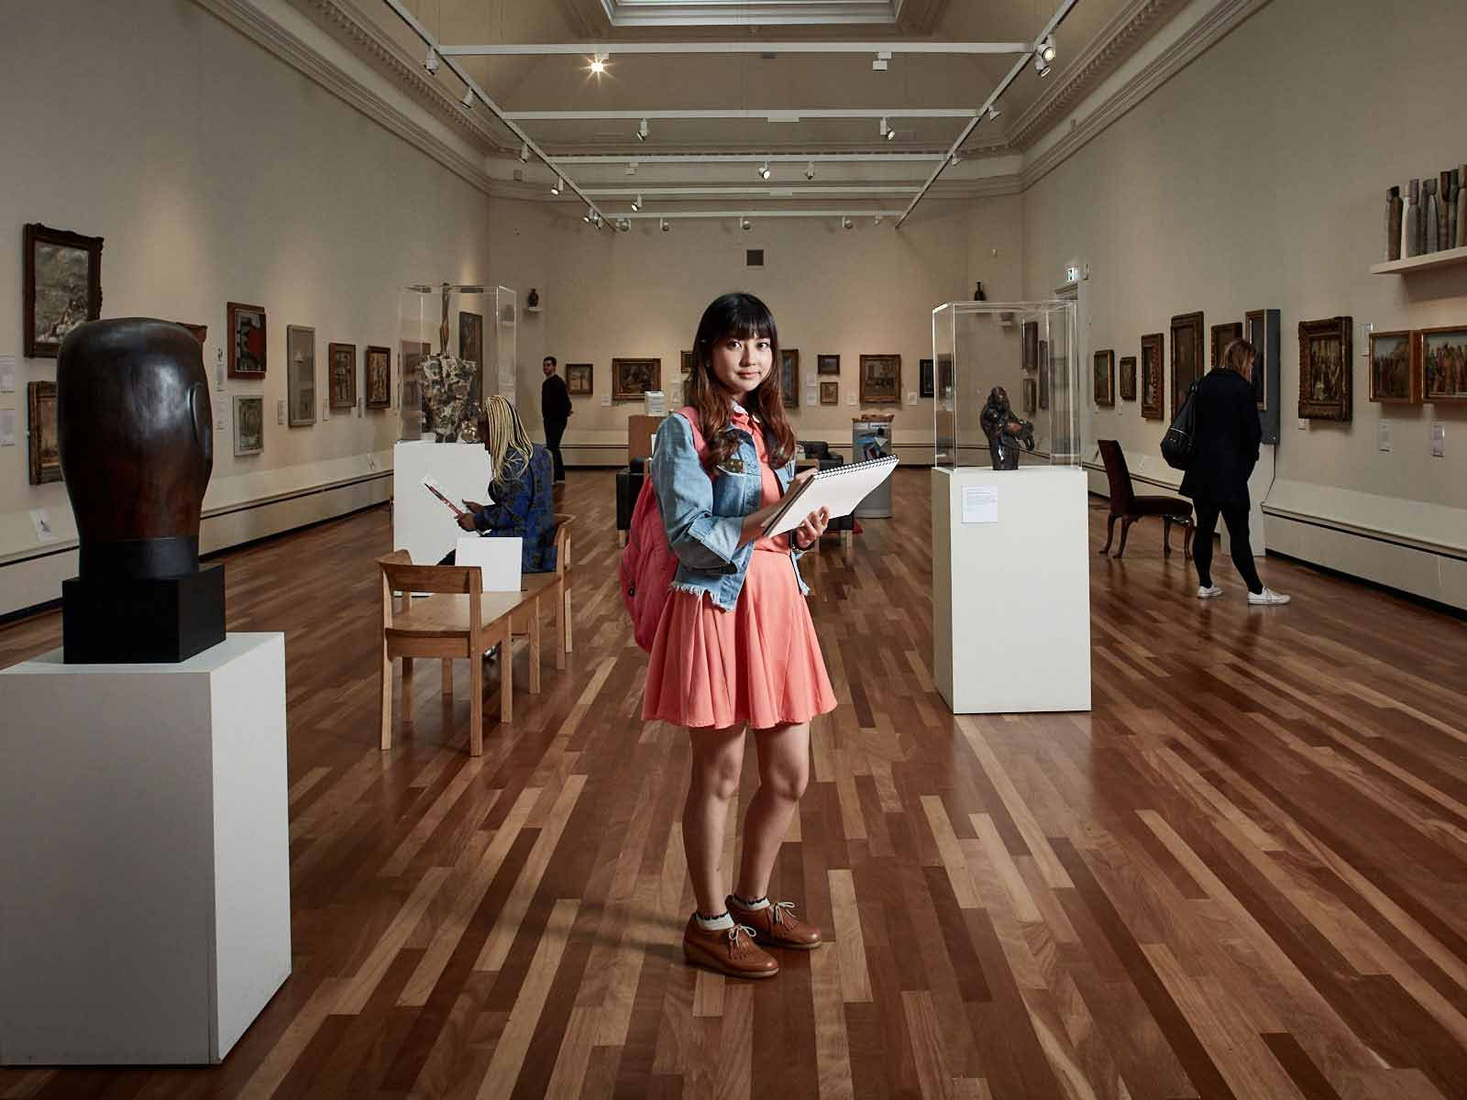 Student working at the York Art Gallery